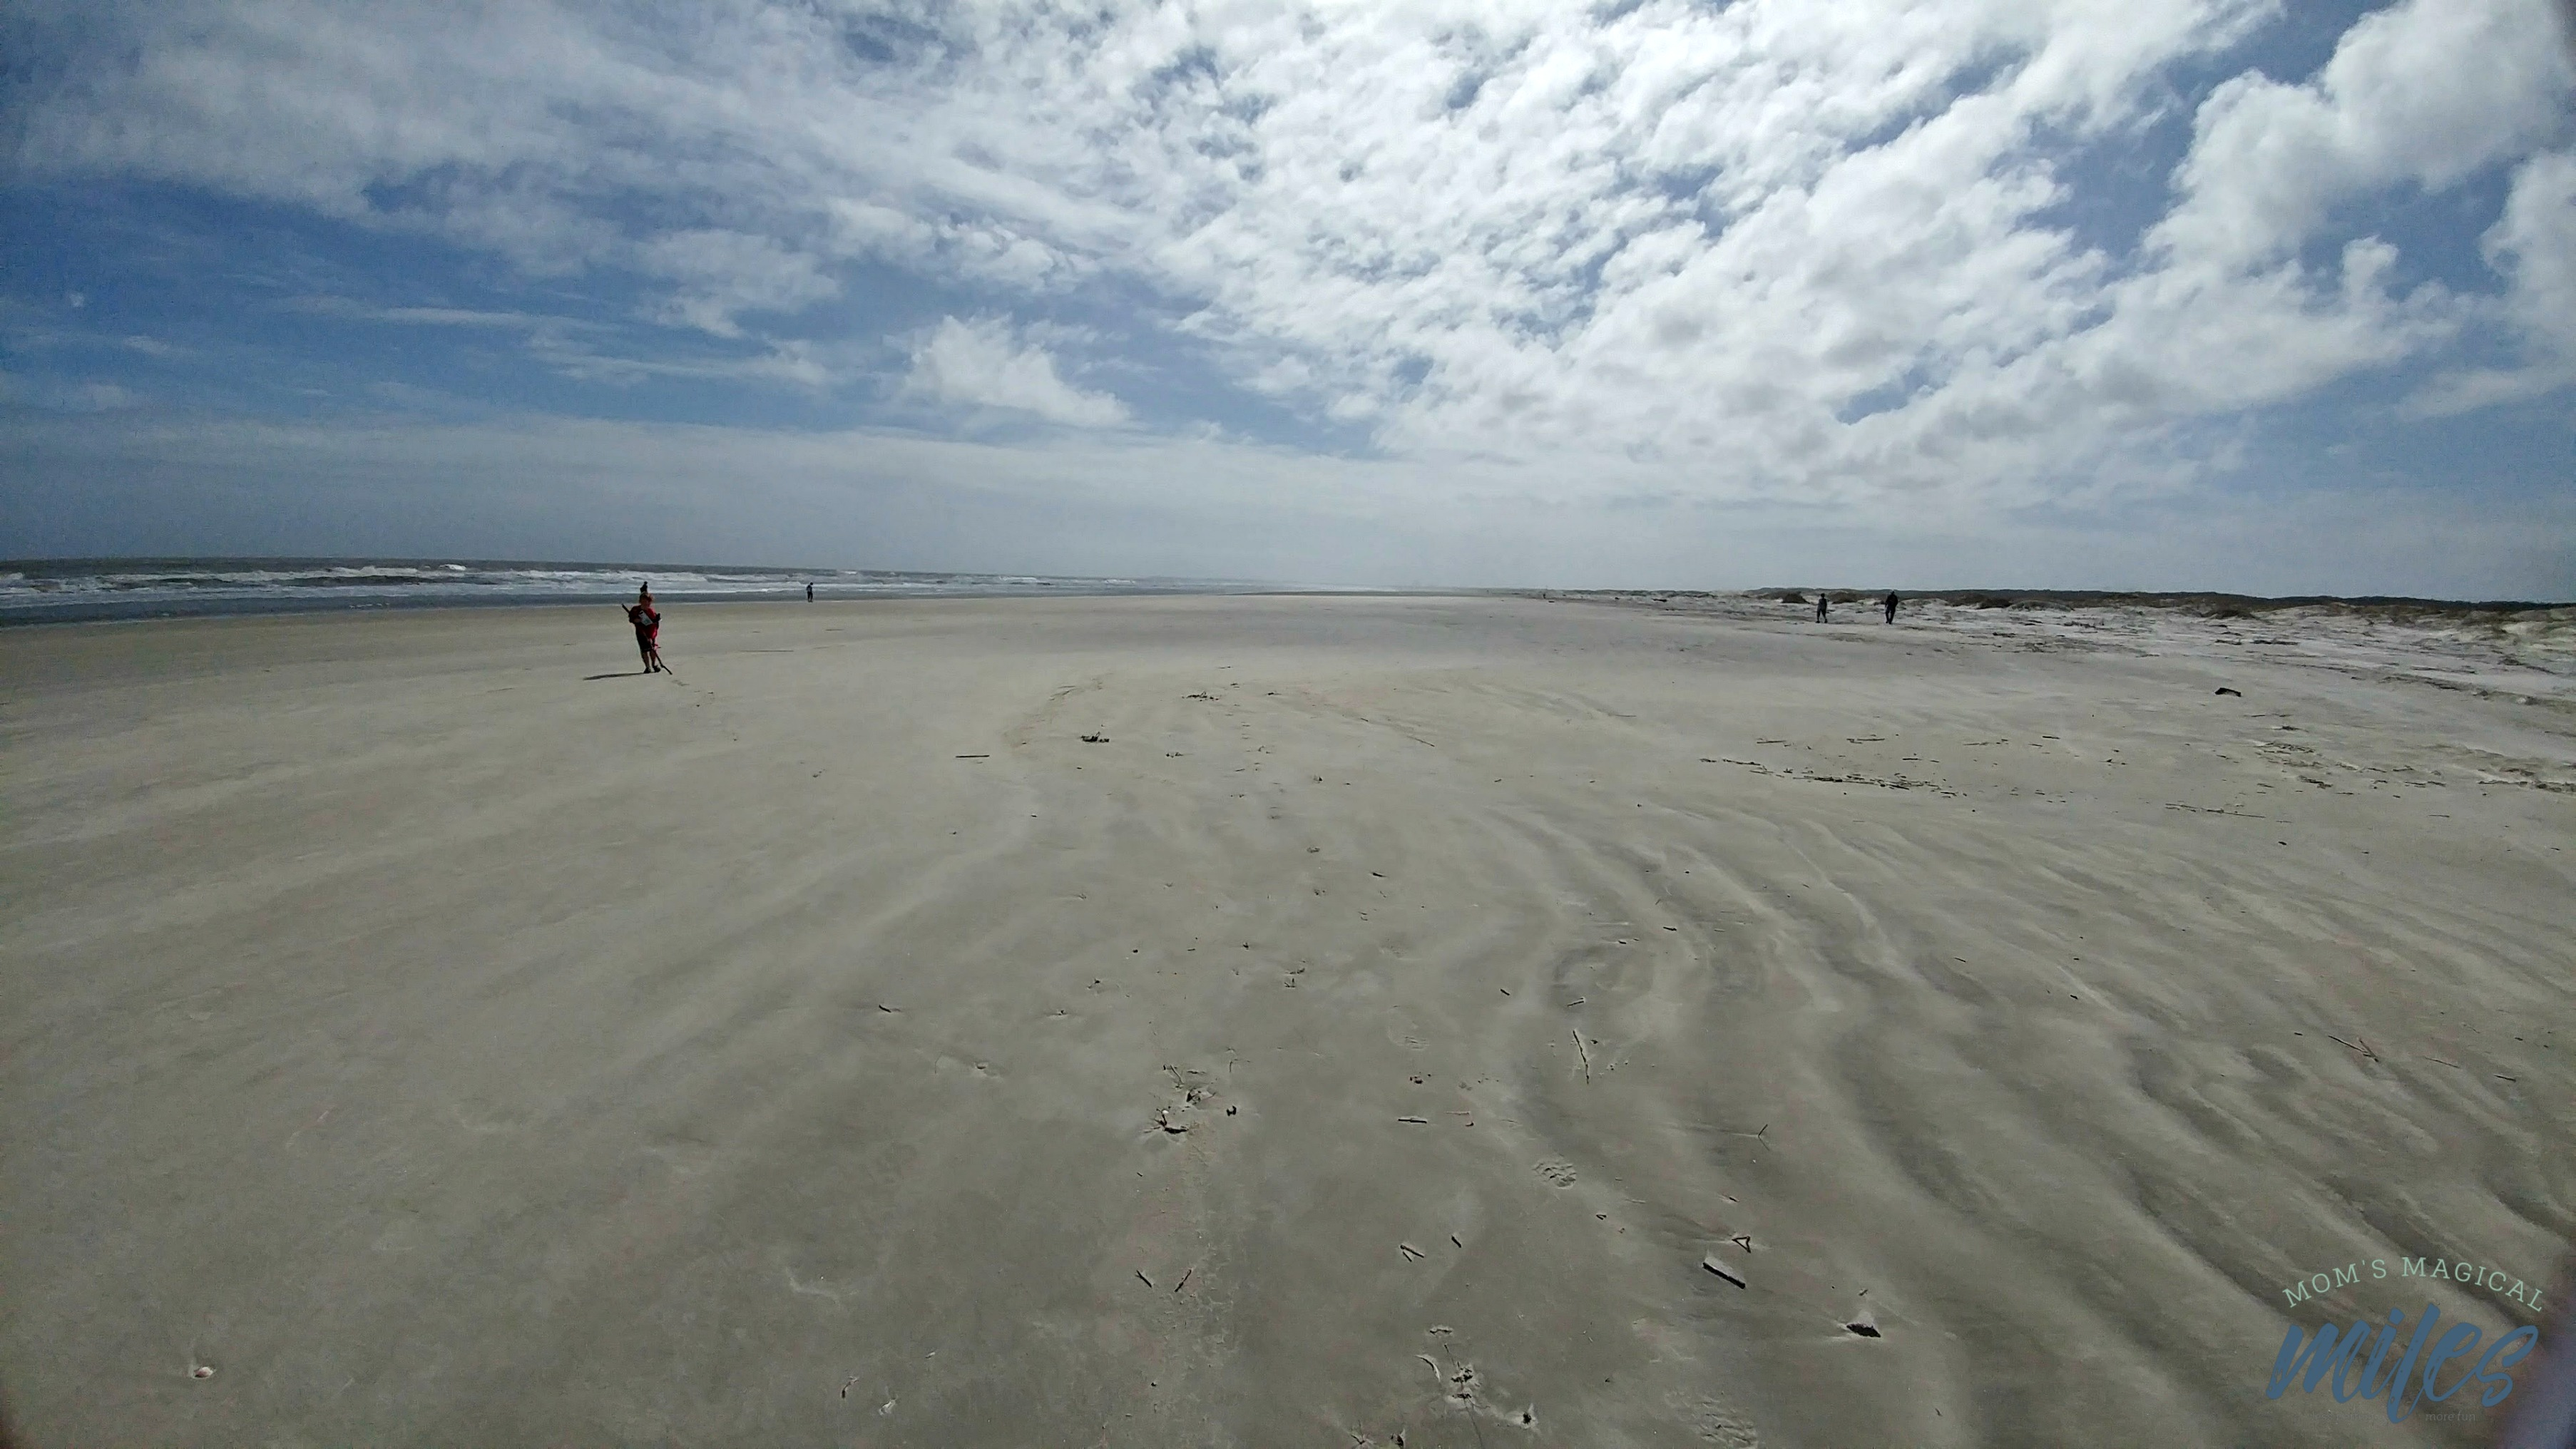 The vast expanse of beach on Georgia's Cumberland Island is breathtaking.